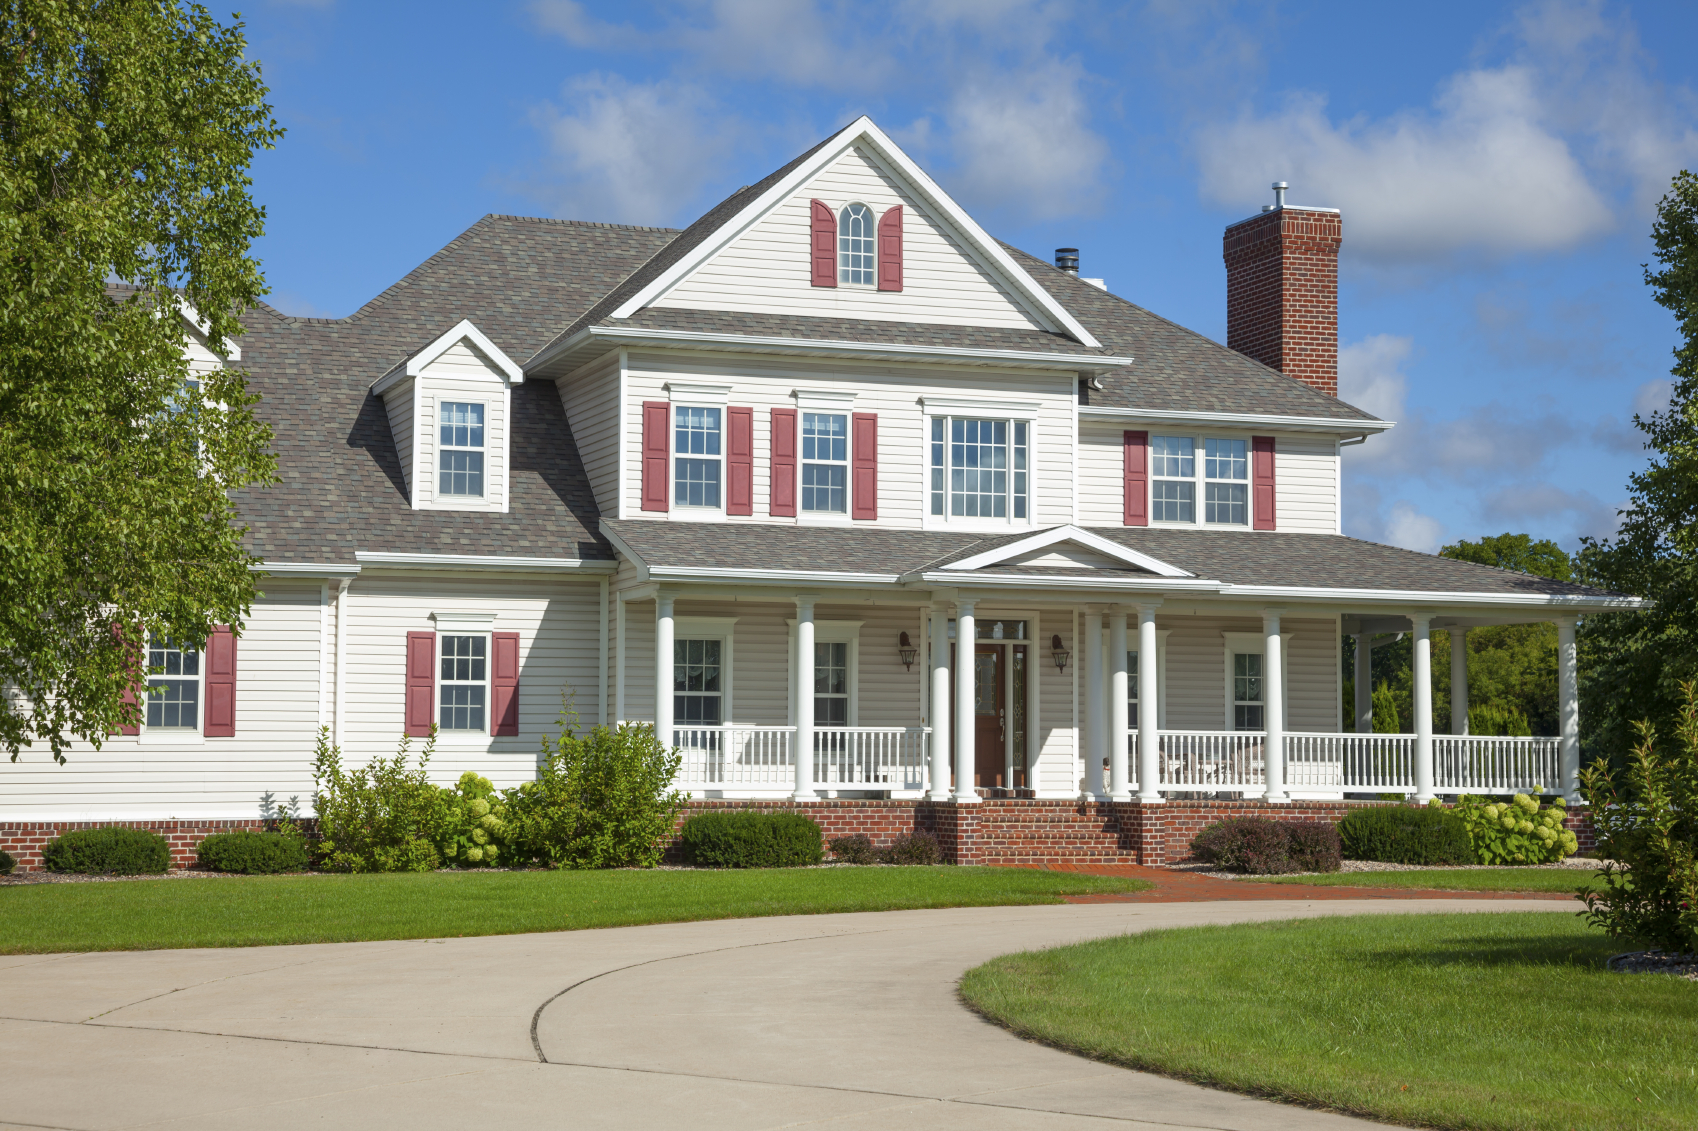 Home Improvement Projects That Can Boost Curb Appeal